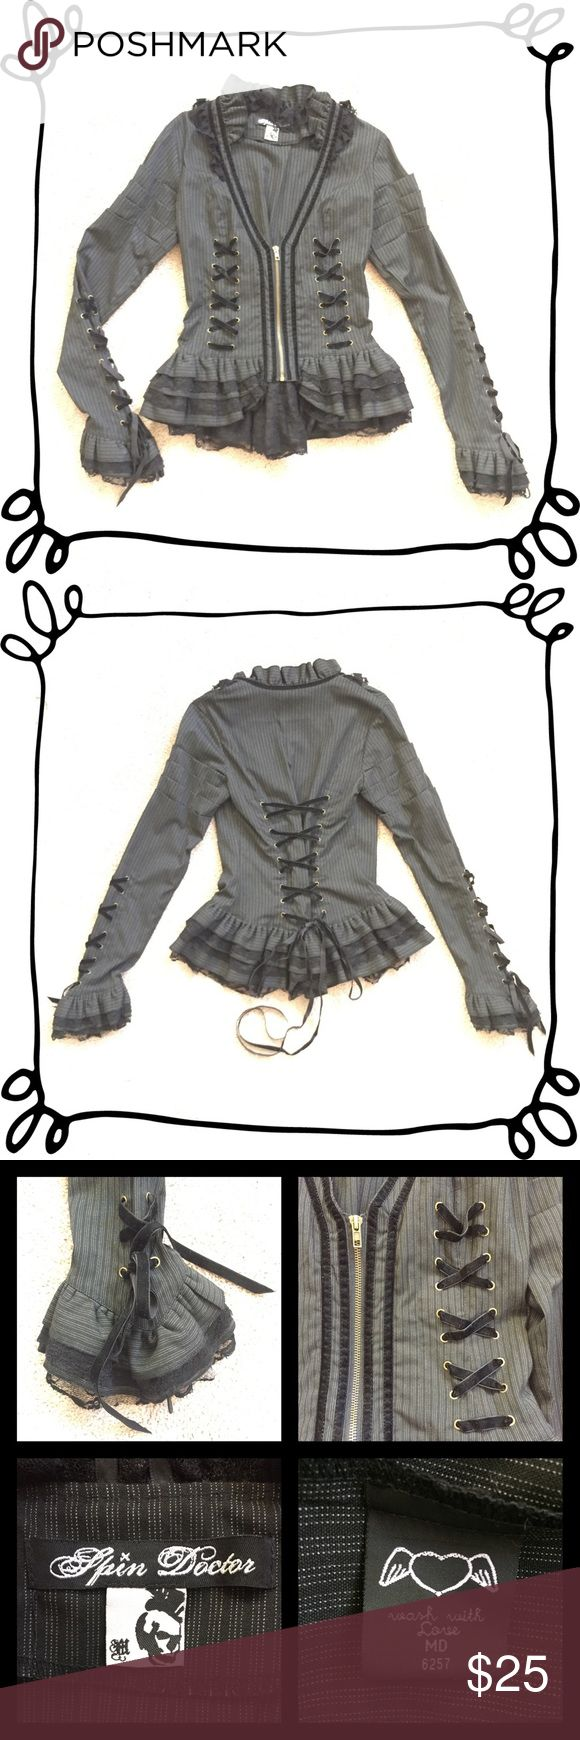 Spin Doctor corset-laced jacket Only worn once! Sexy black pinstripe jacket with zip front and lace edging around collar and sleeves. Back and sleeves feature corset style lacing in black velvet ribbon. Lightweight and comfortable for the hottest concerts! Spin Doctor Jackets & Coats